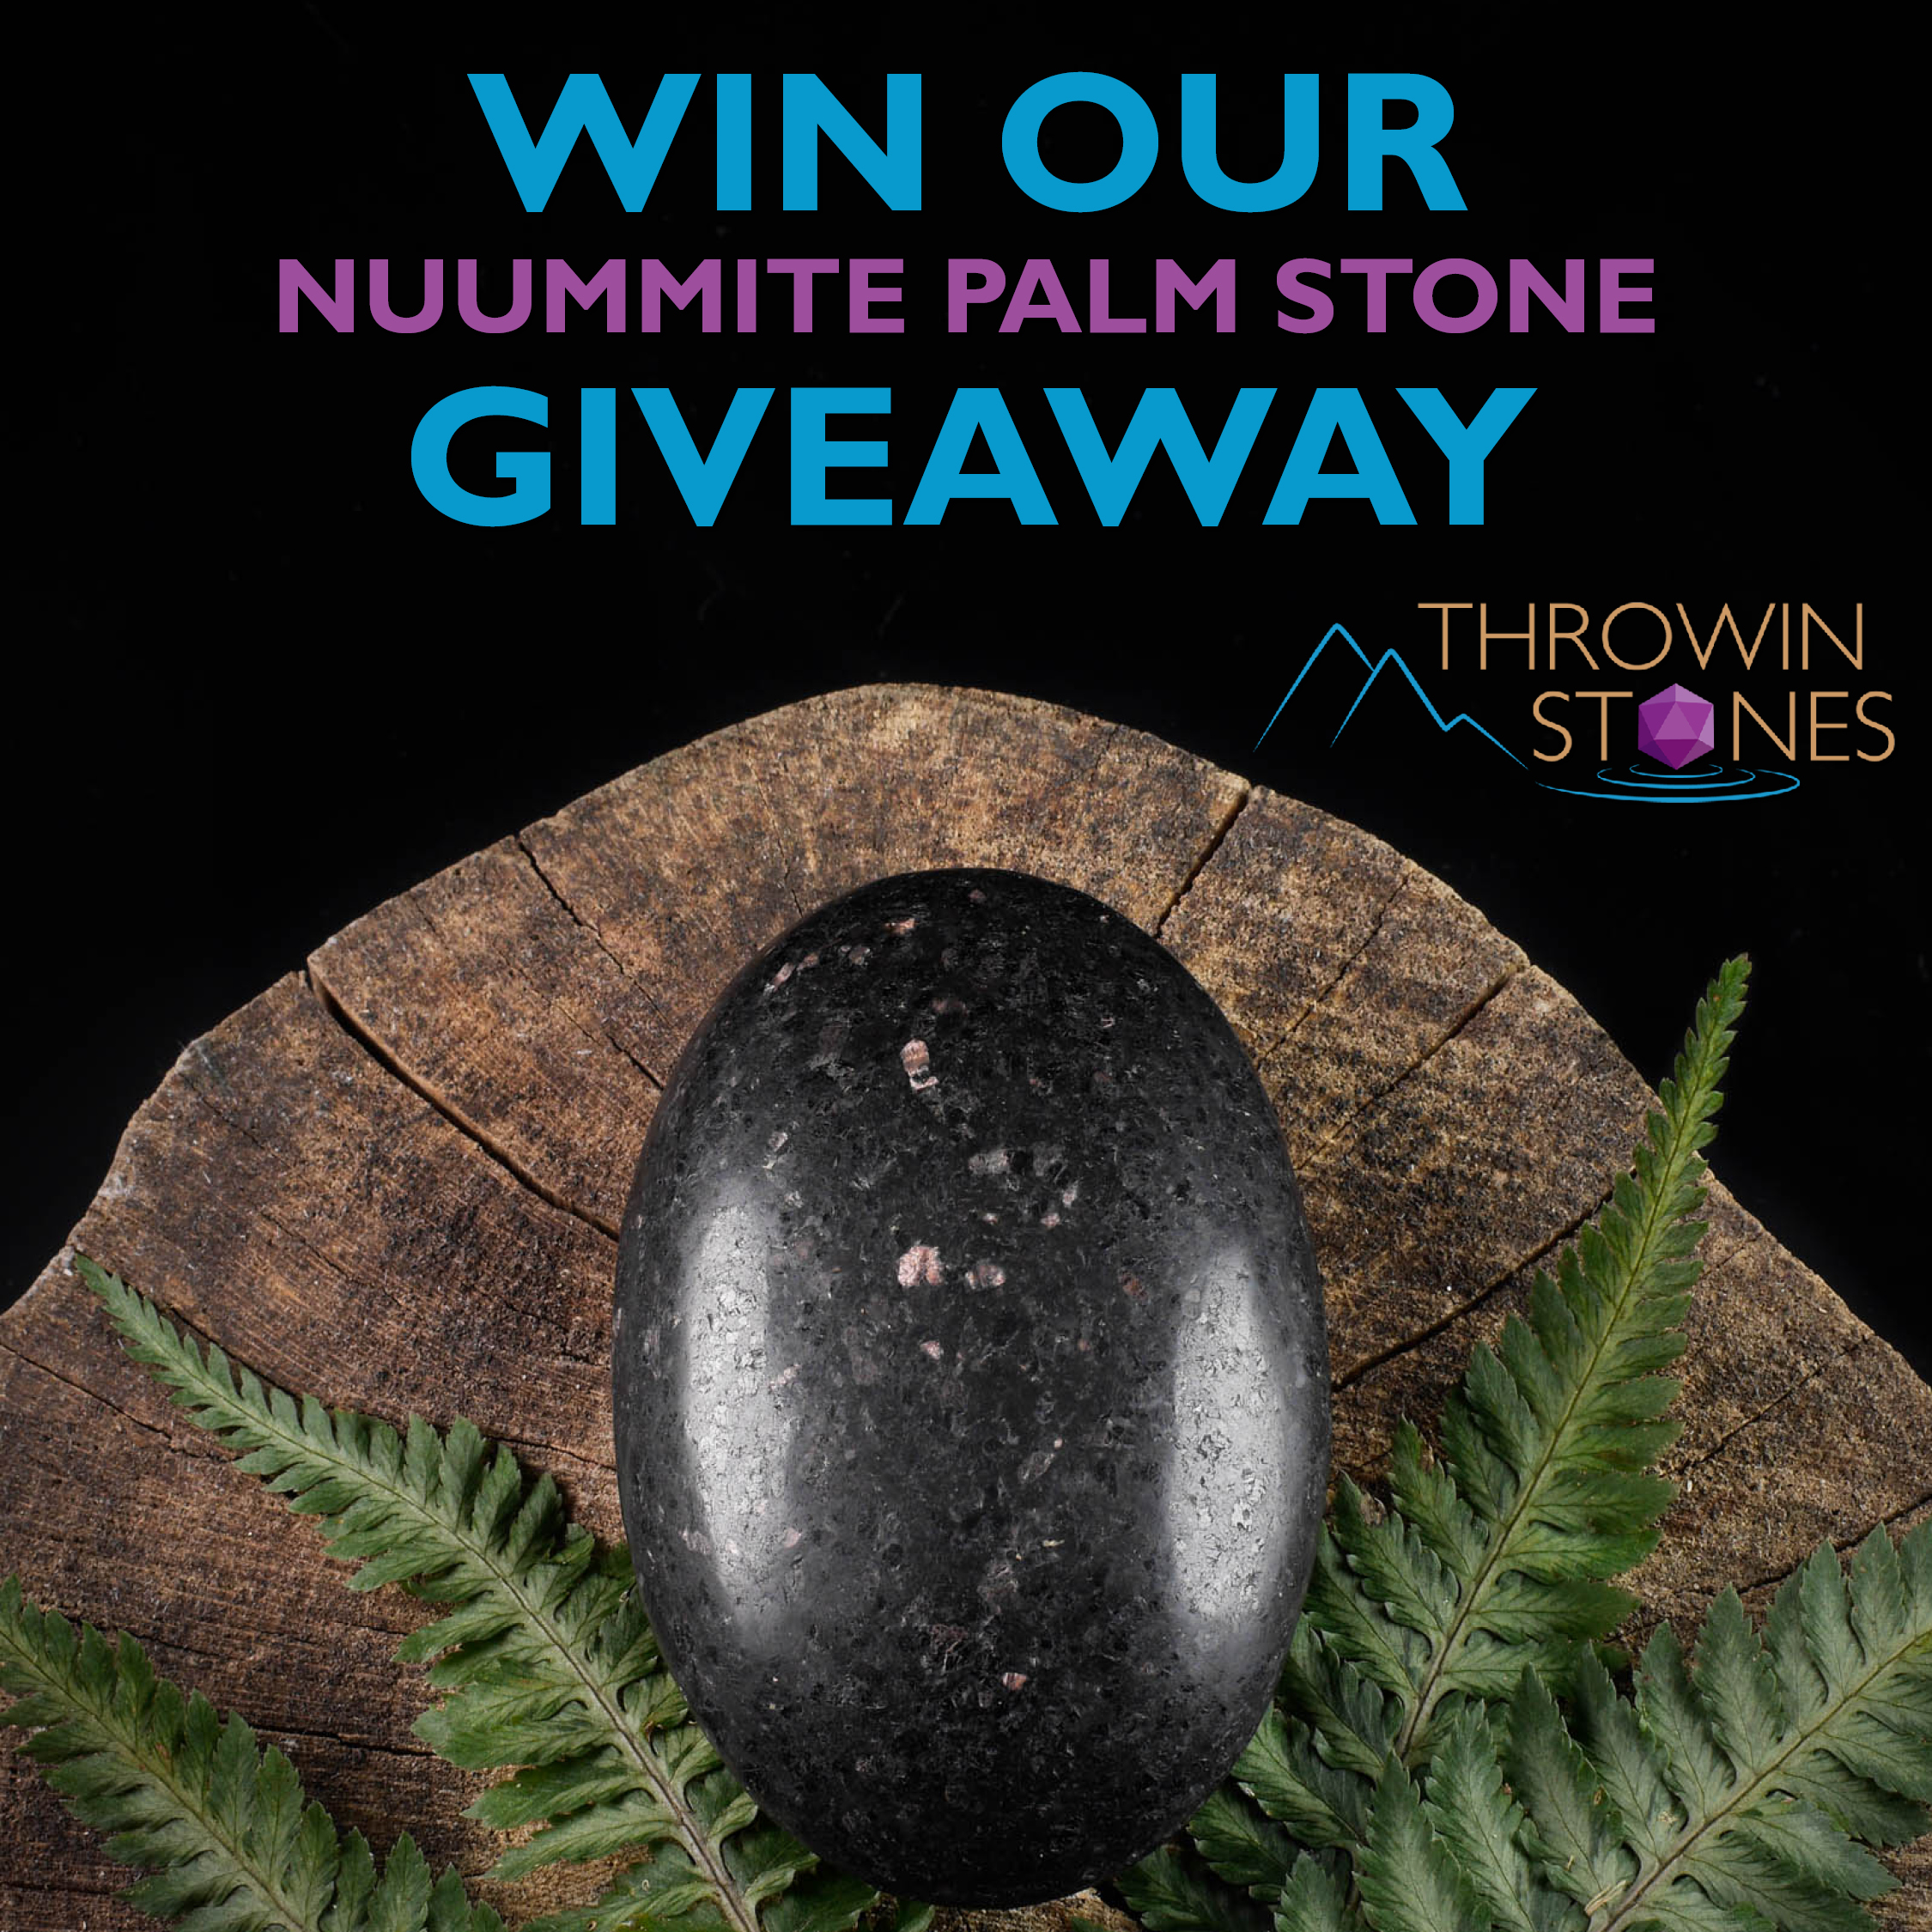 Nuummite Palm Giveaway